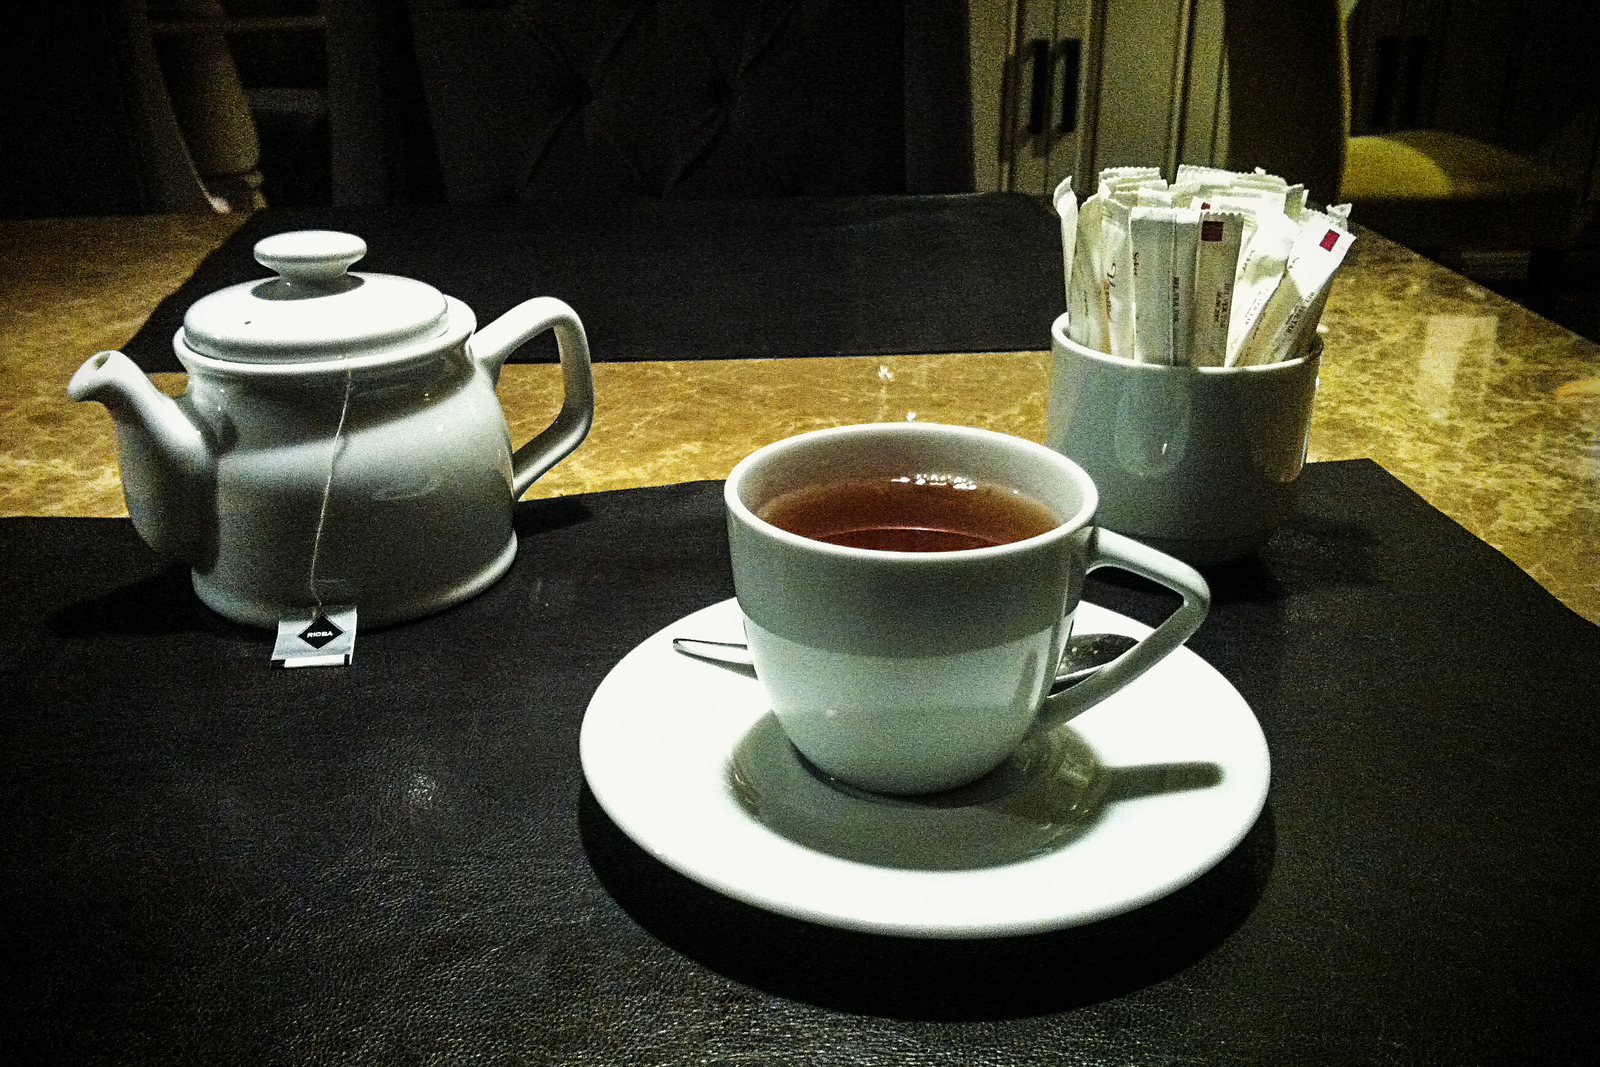 A photo of a teacup and teapot at Vanilla restaurant in Antalya.